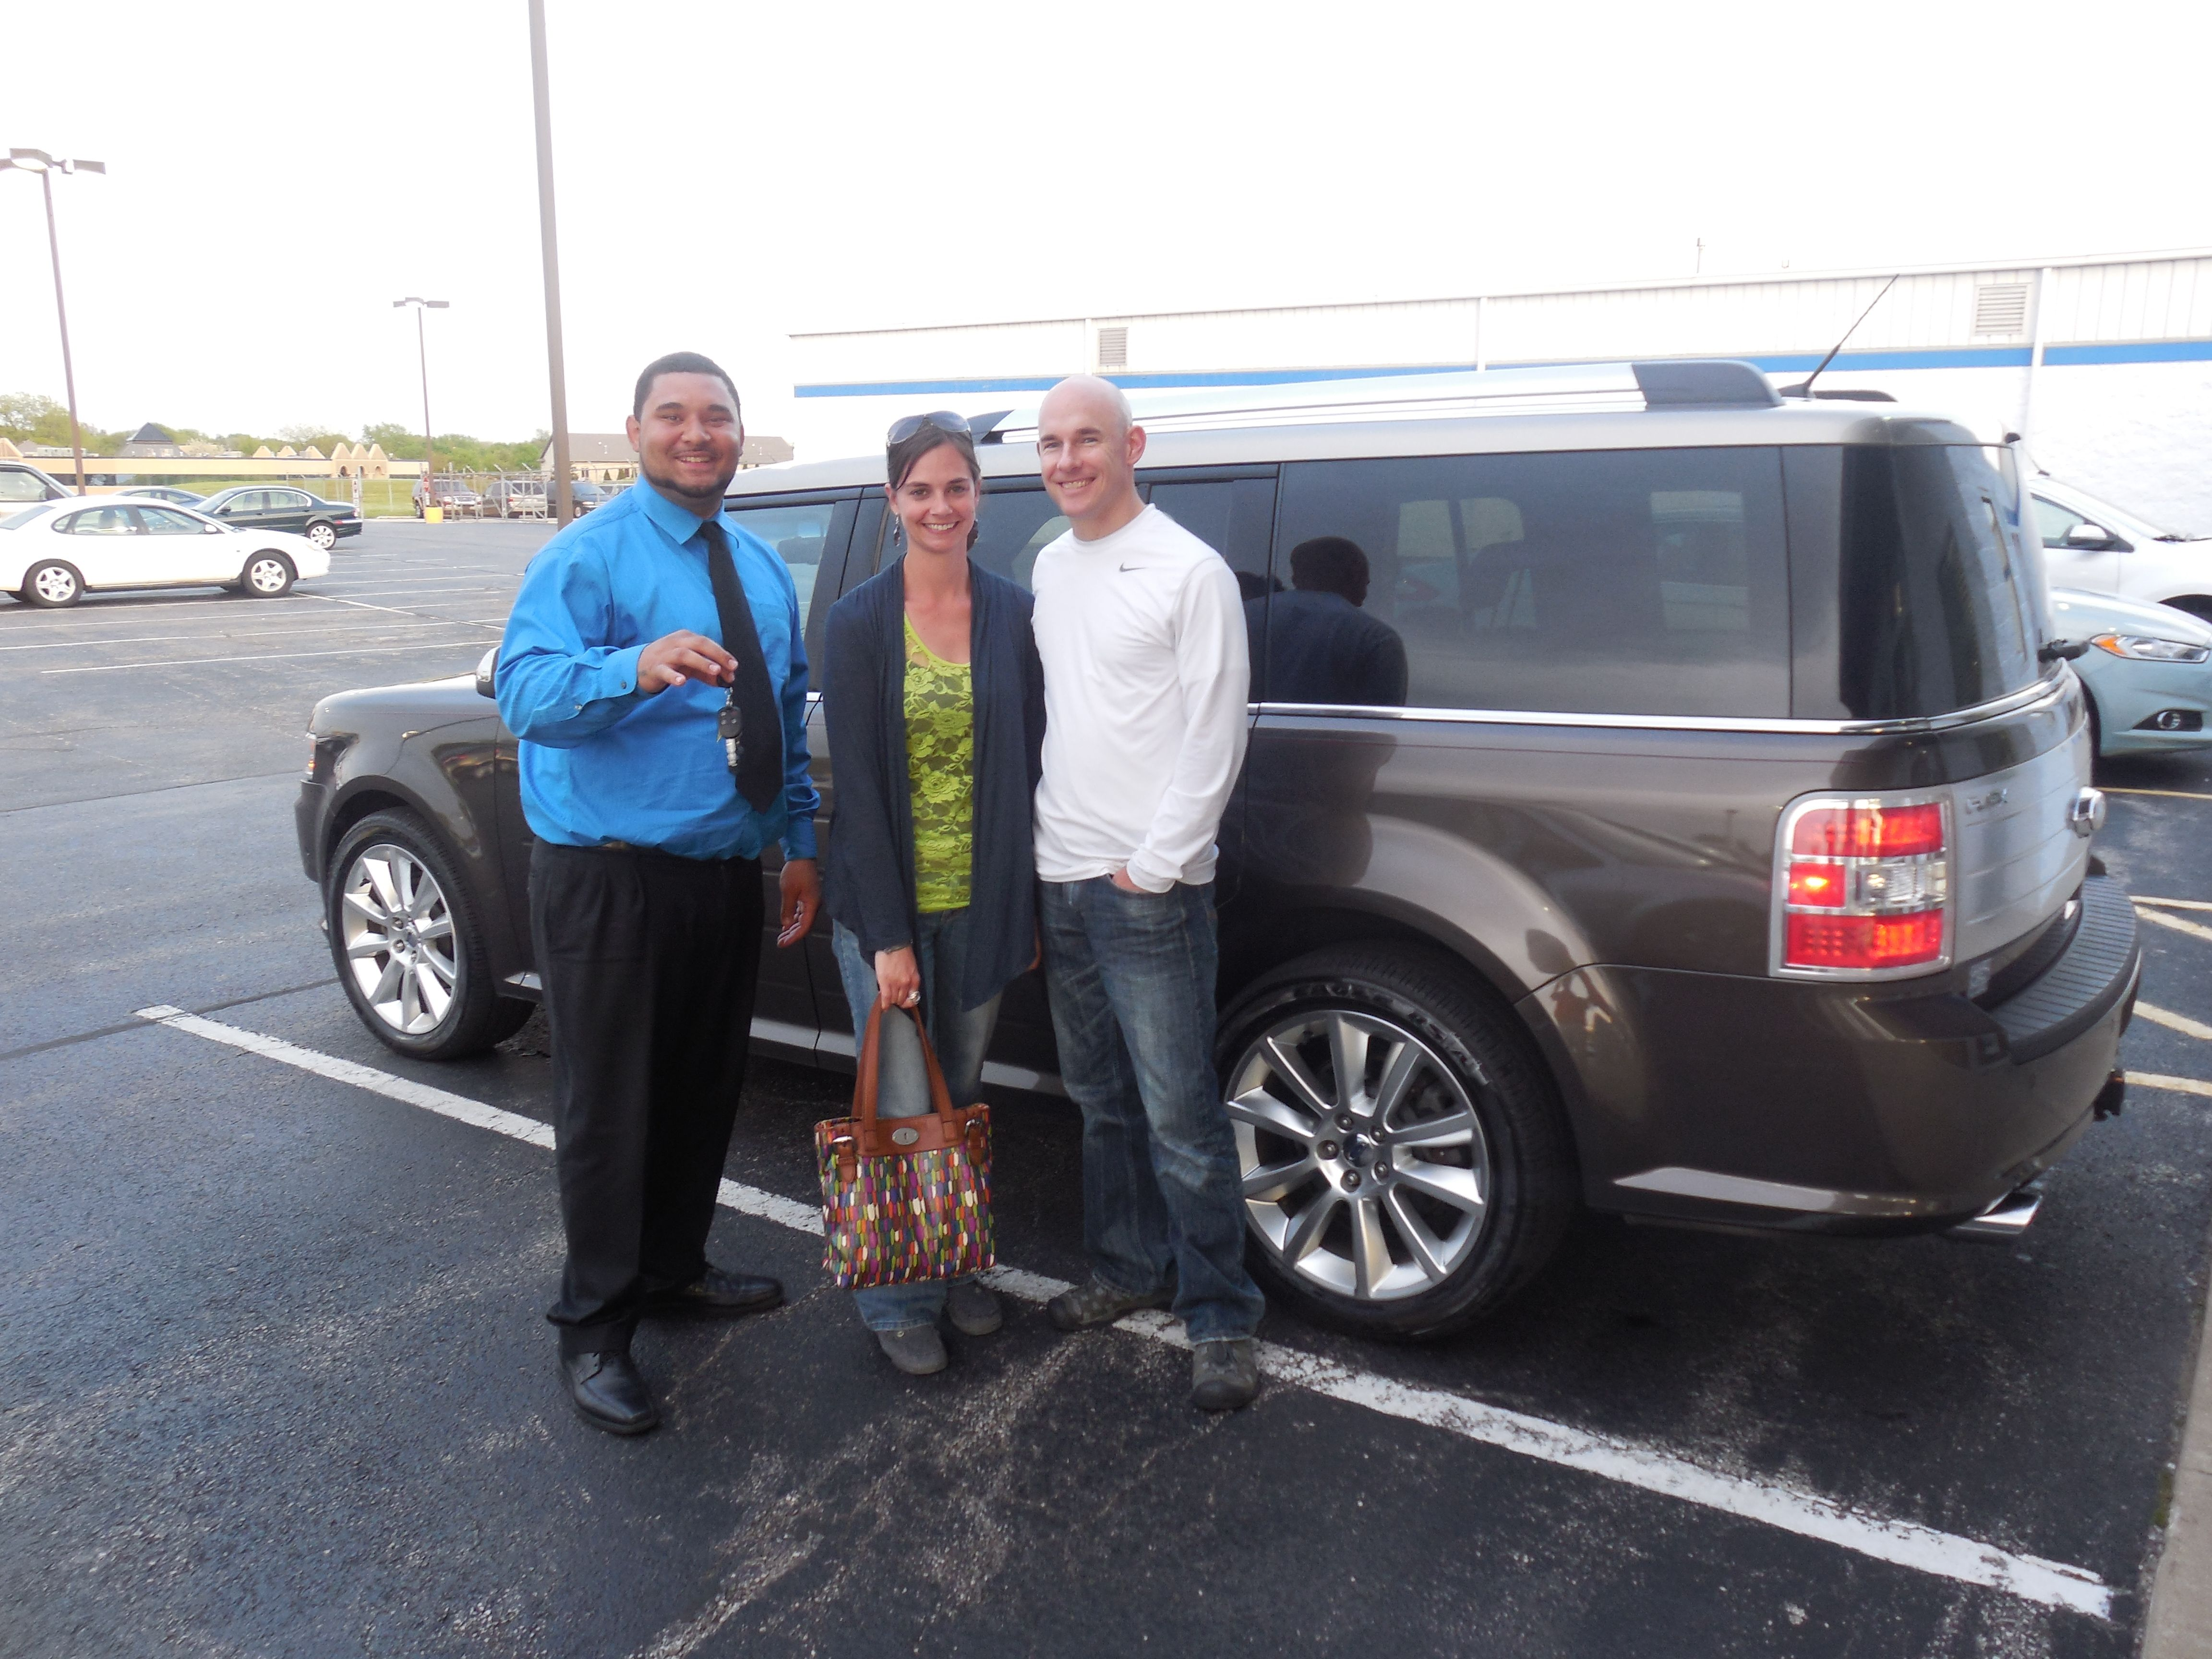 Congratulations to Andy Michmerhuizen from West Michigan on the purchase of his 2011 Ford Flex! Tony Hendershot and the rest of us at Court Street Ford would like to thank you for your business!